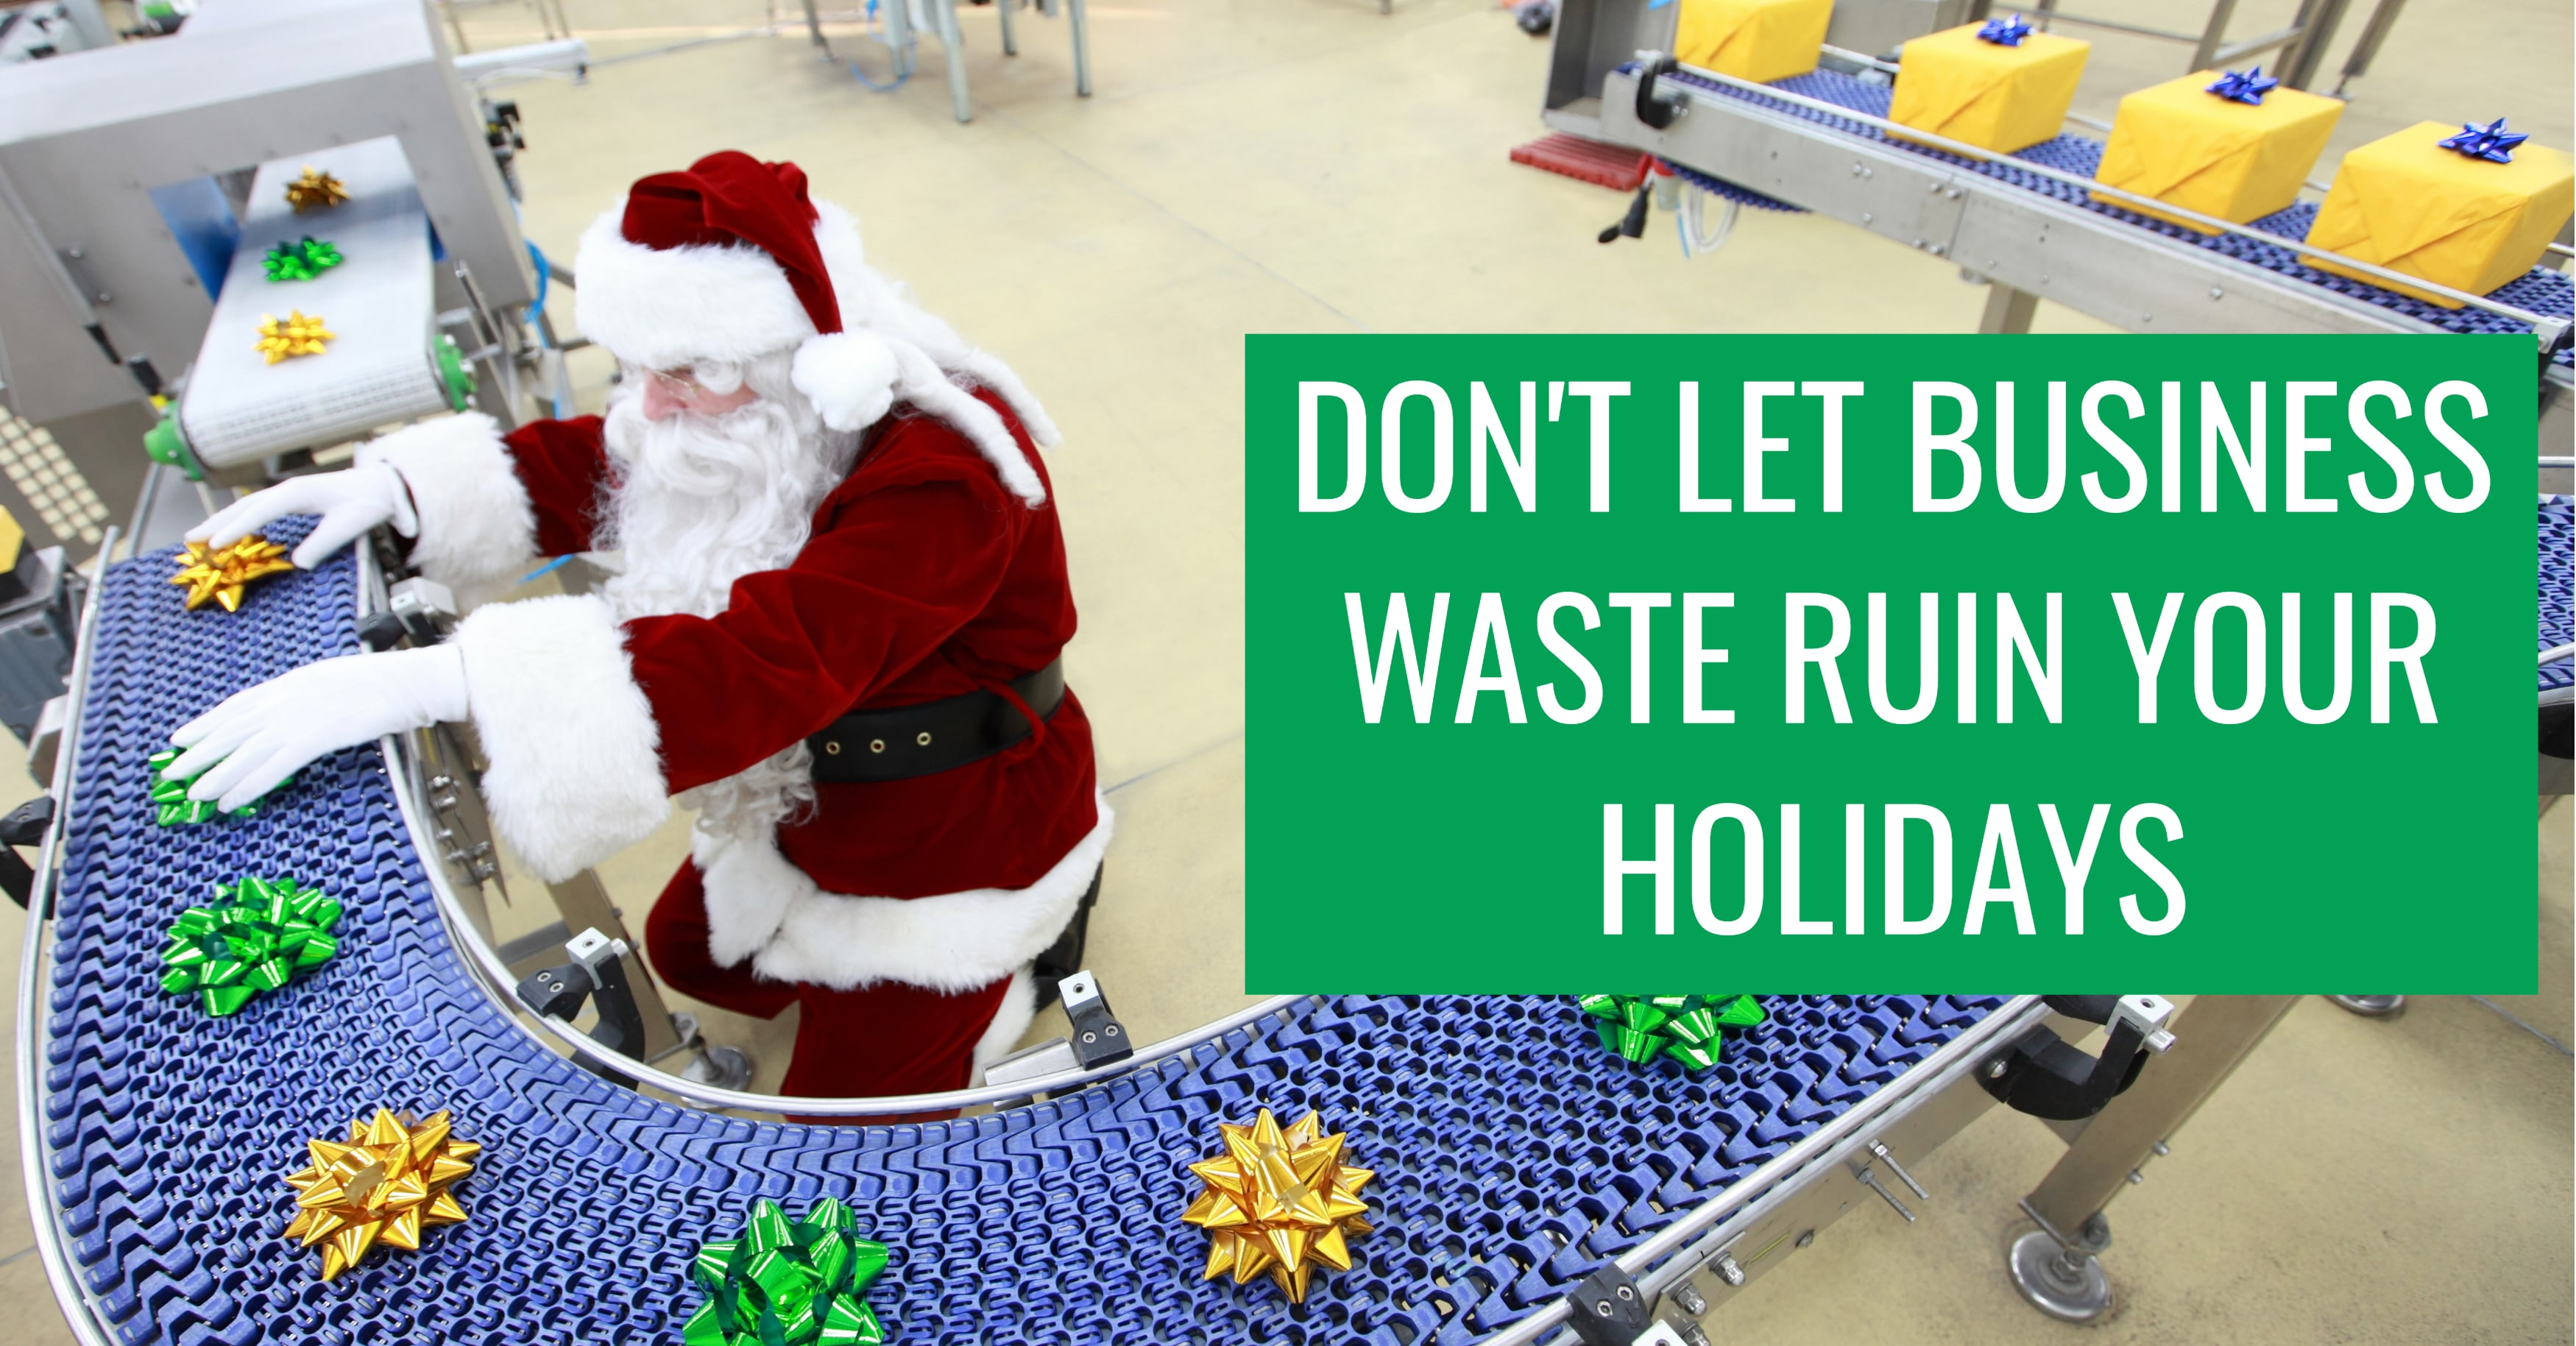 Don't Let Business Waste Ruin Your Holidays